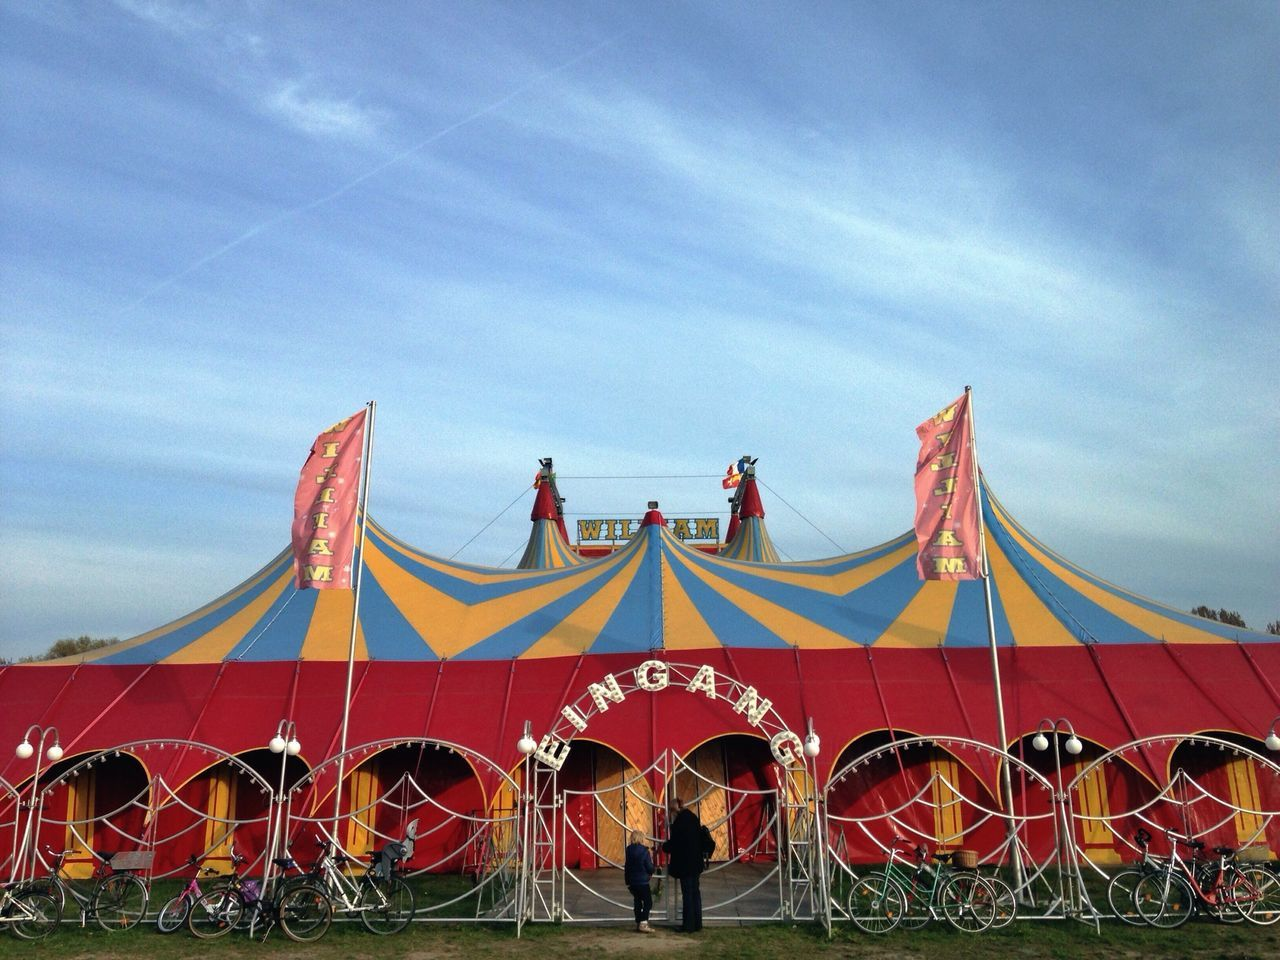 Circus, Circus Pantone Colors By GIZMON The Purist (no Edit, No Filter) Mobilephotography.de